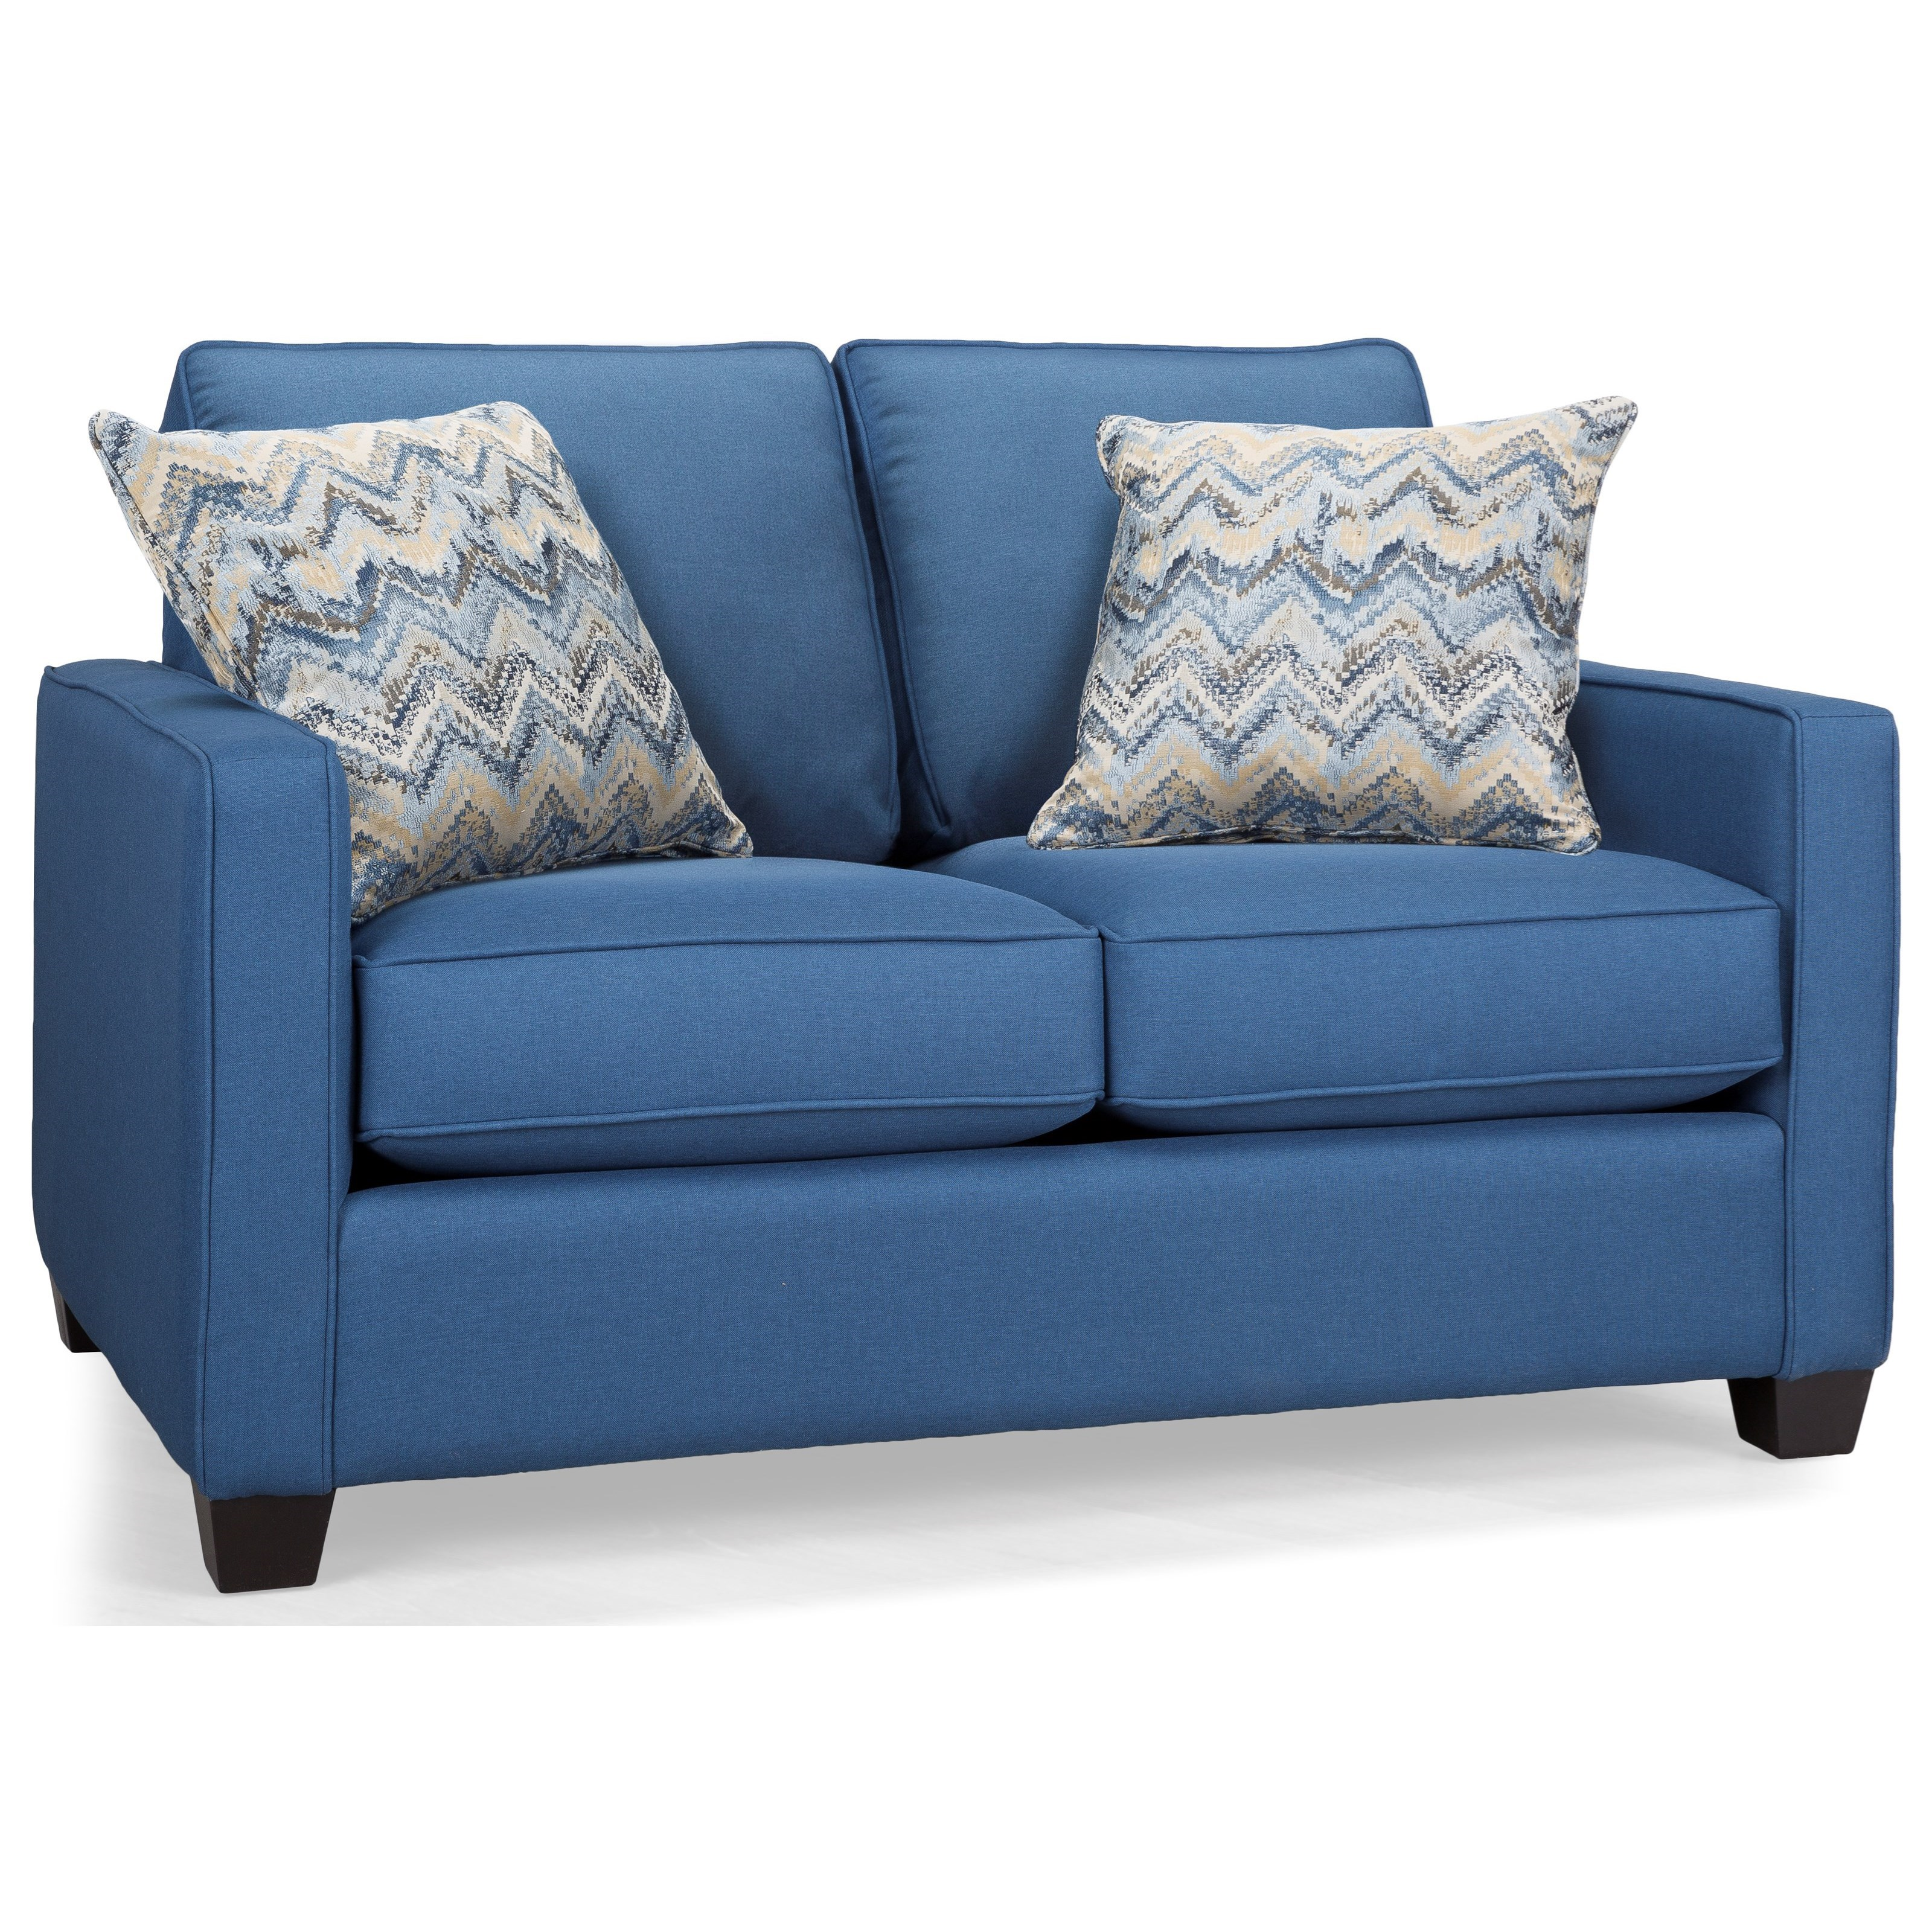 2855 Loveseat by Decor-Rest at Rooms for Less